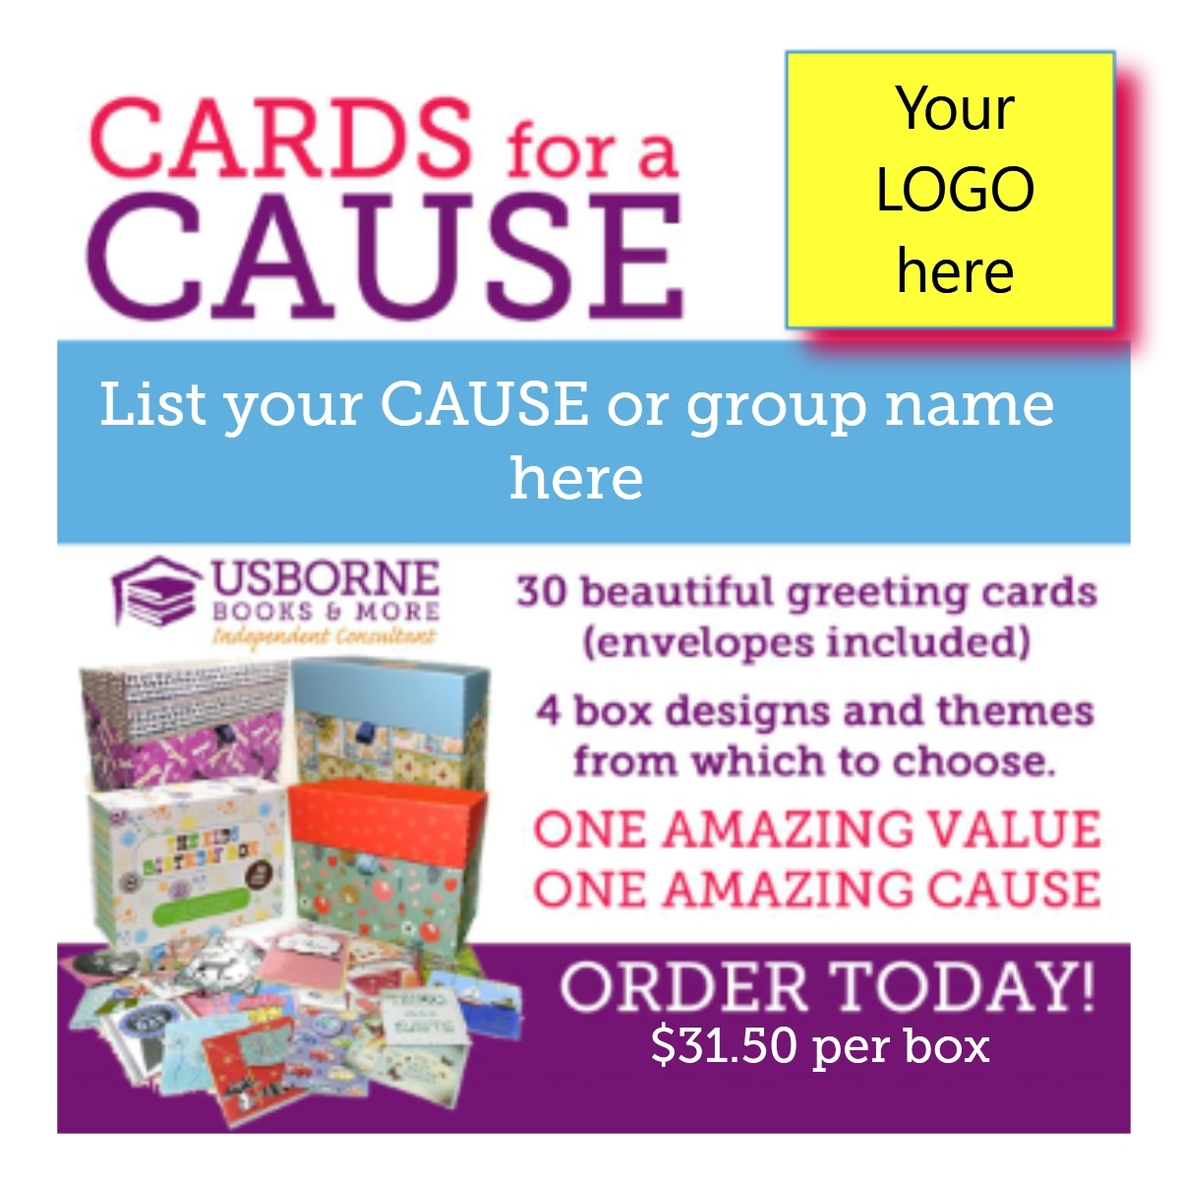 Cards for a Cause is GREAT to sell for fundraisers because it is a quality product that people will use (cards are equivalent to $4-5 cards in stores), ...